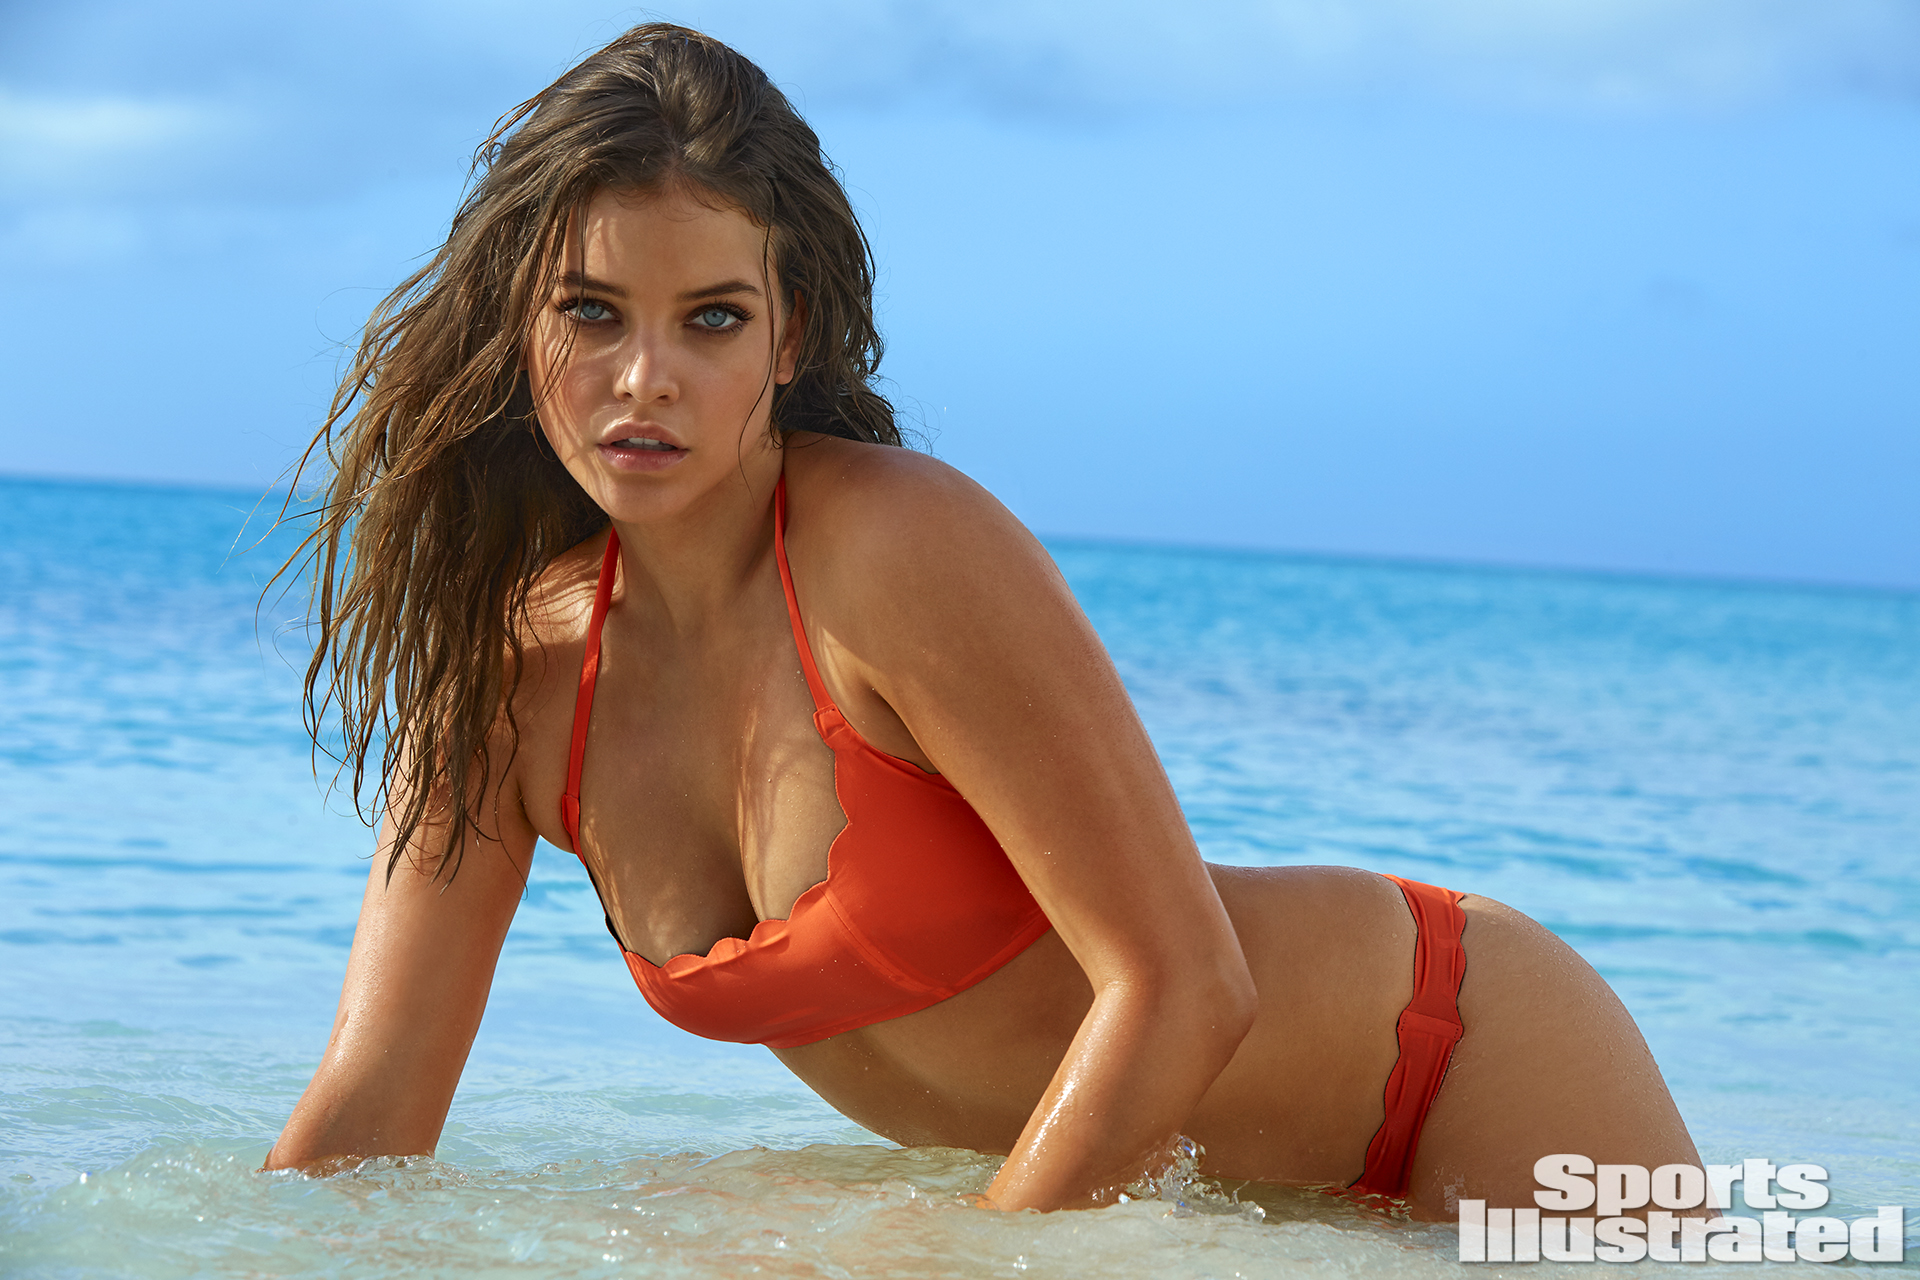 Barbara Palvin was photographed by James Macari in Turks & Caicos. Swimsuit by Pily Q.